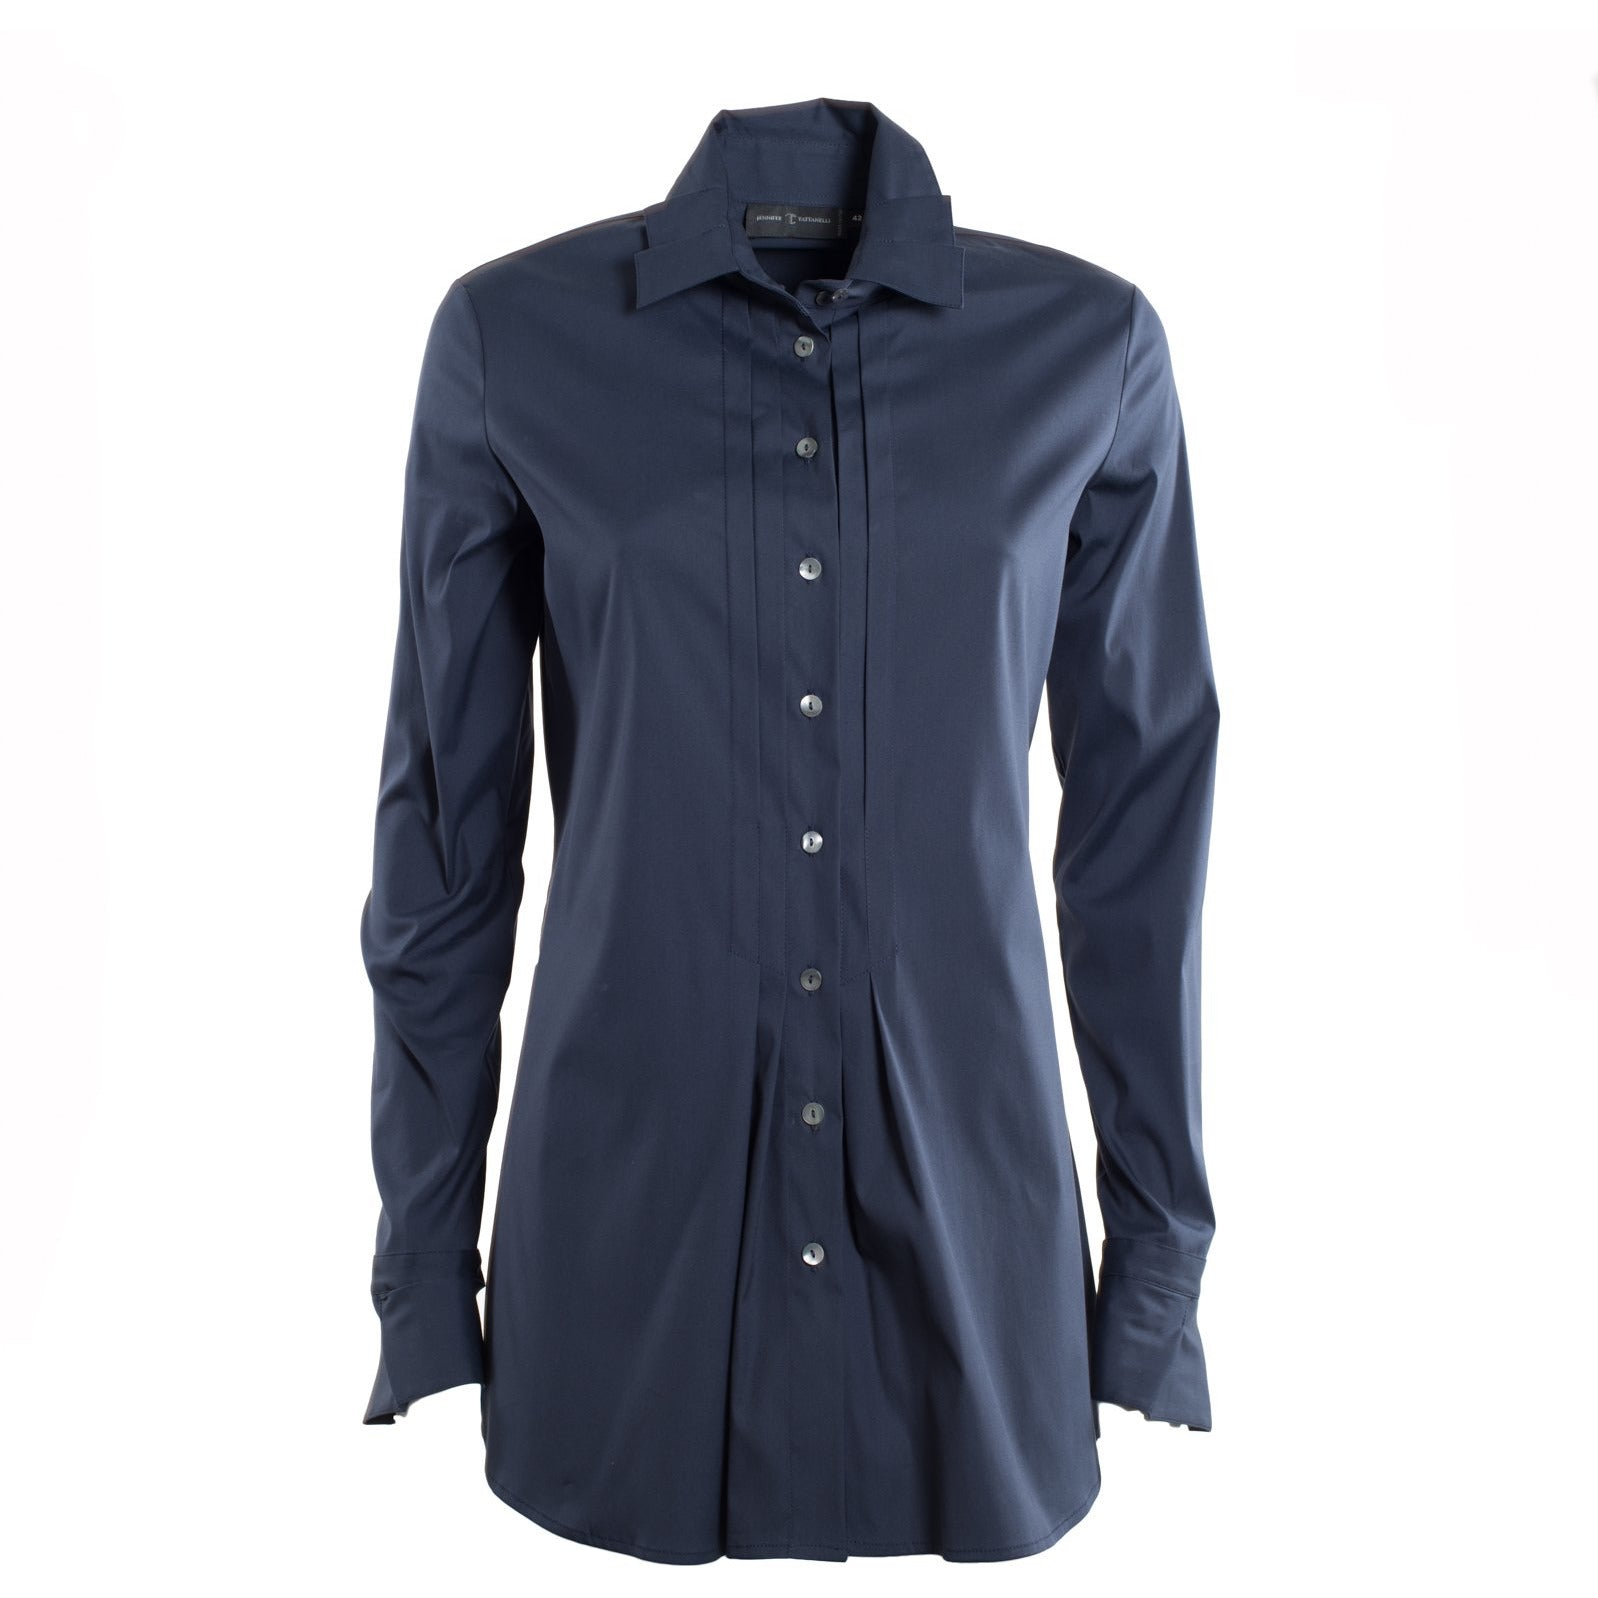 Jennifer Tattanelli crafted in Florence this timeless wardrobe essential, this classic blue long-sleeved women shirt is crafted from high quality cotton